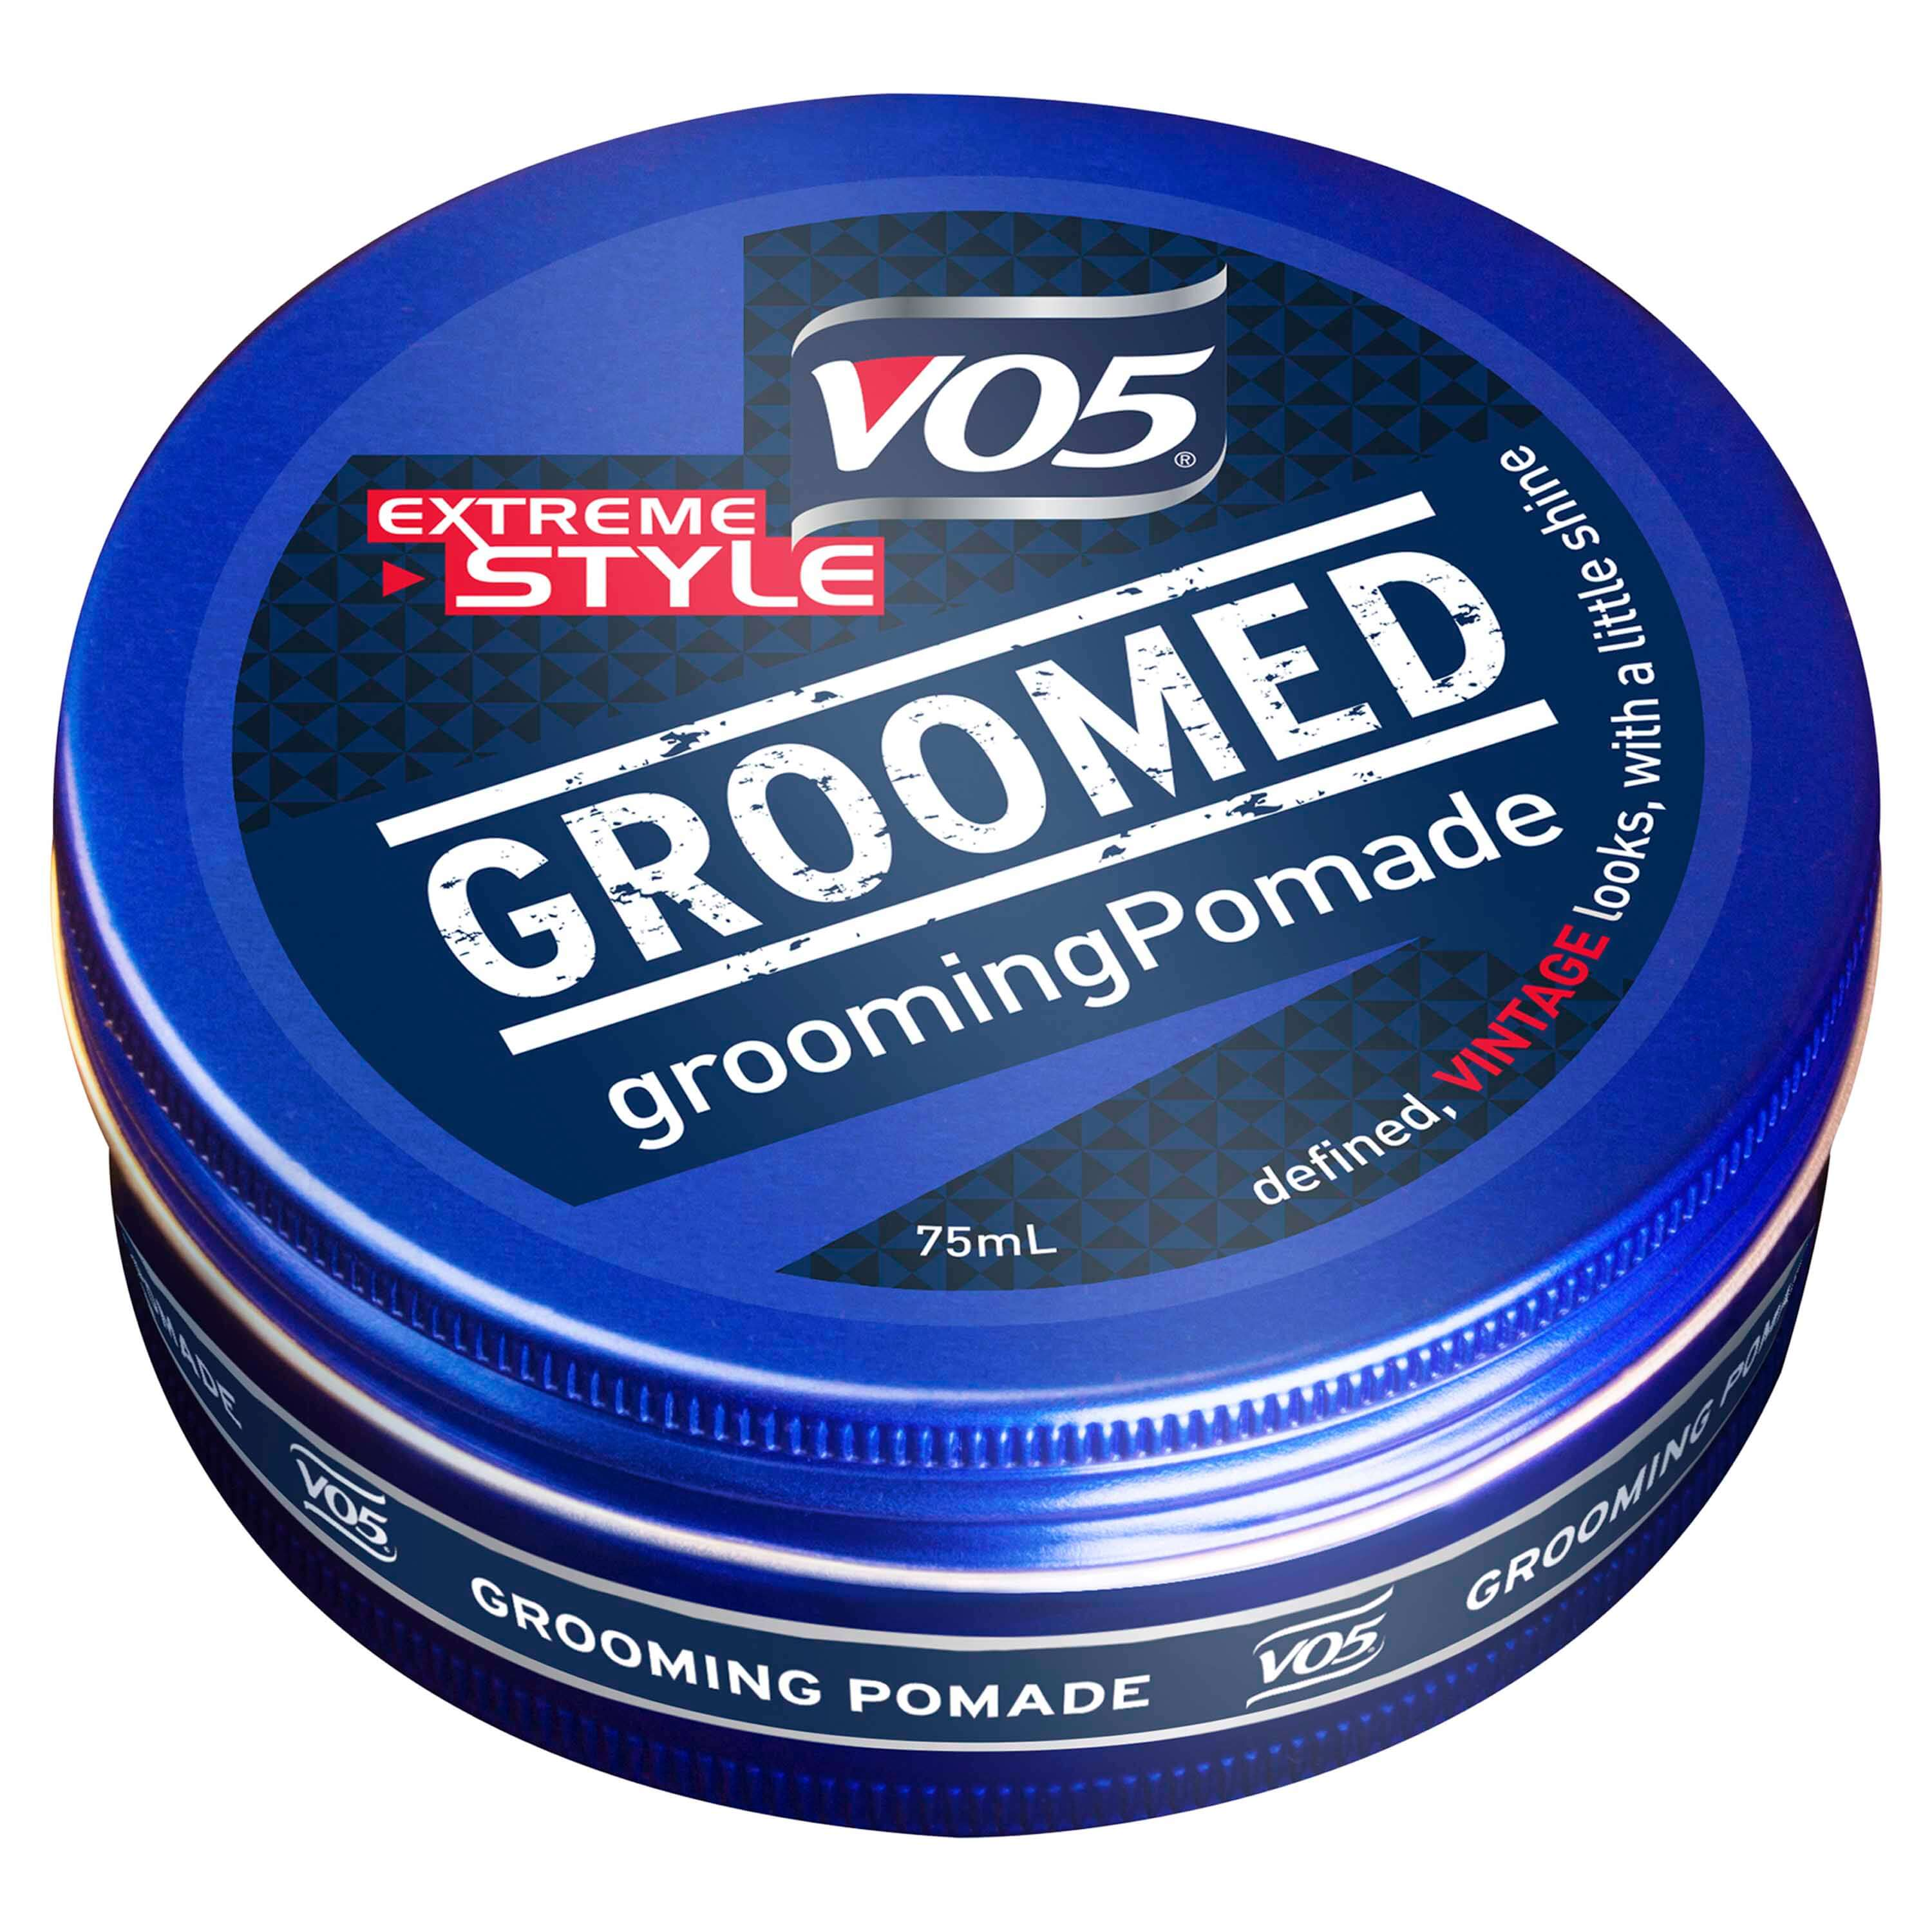 VO5 Groomed Extreme Style Grooming Pomade